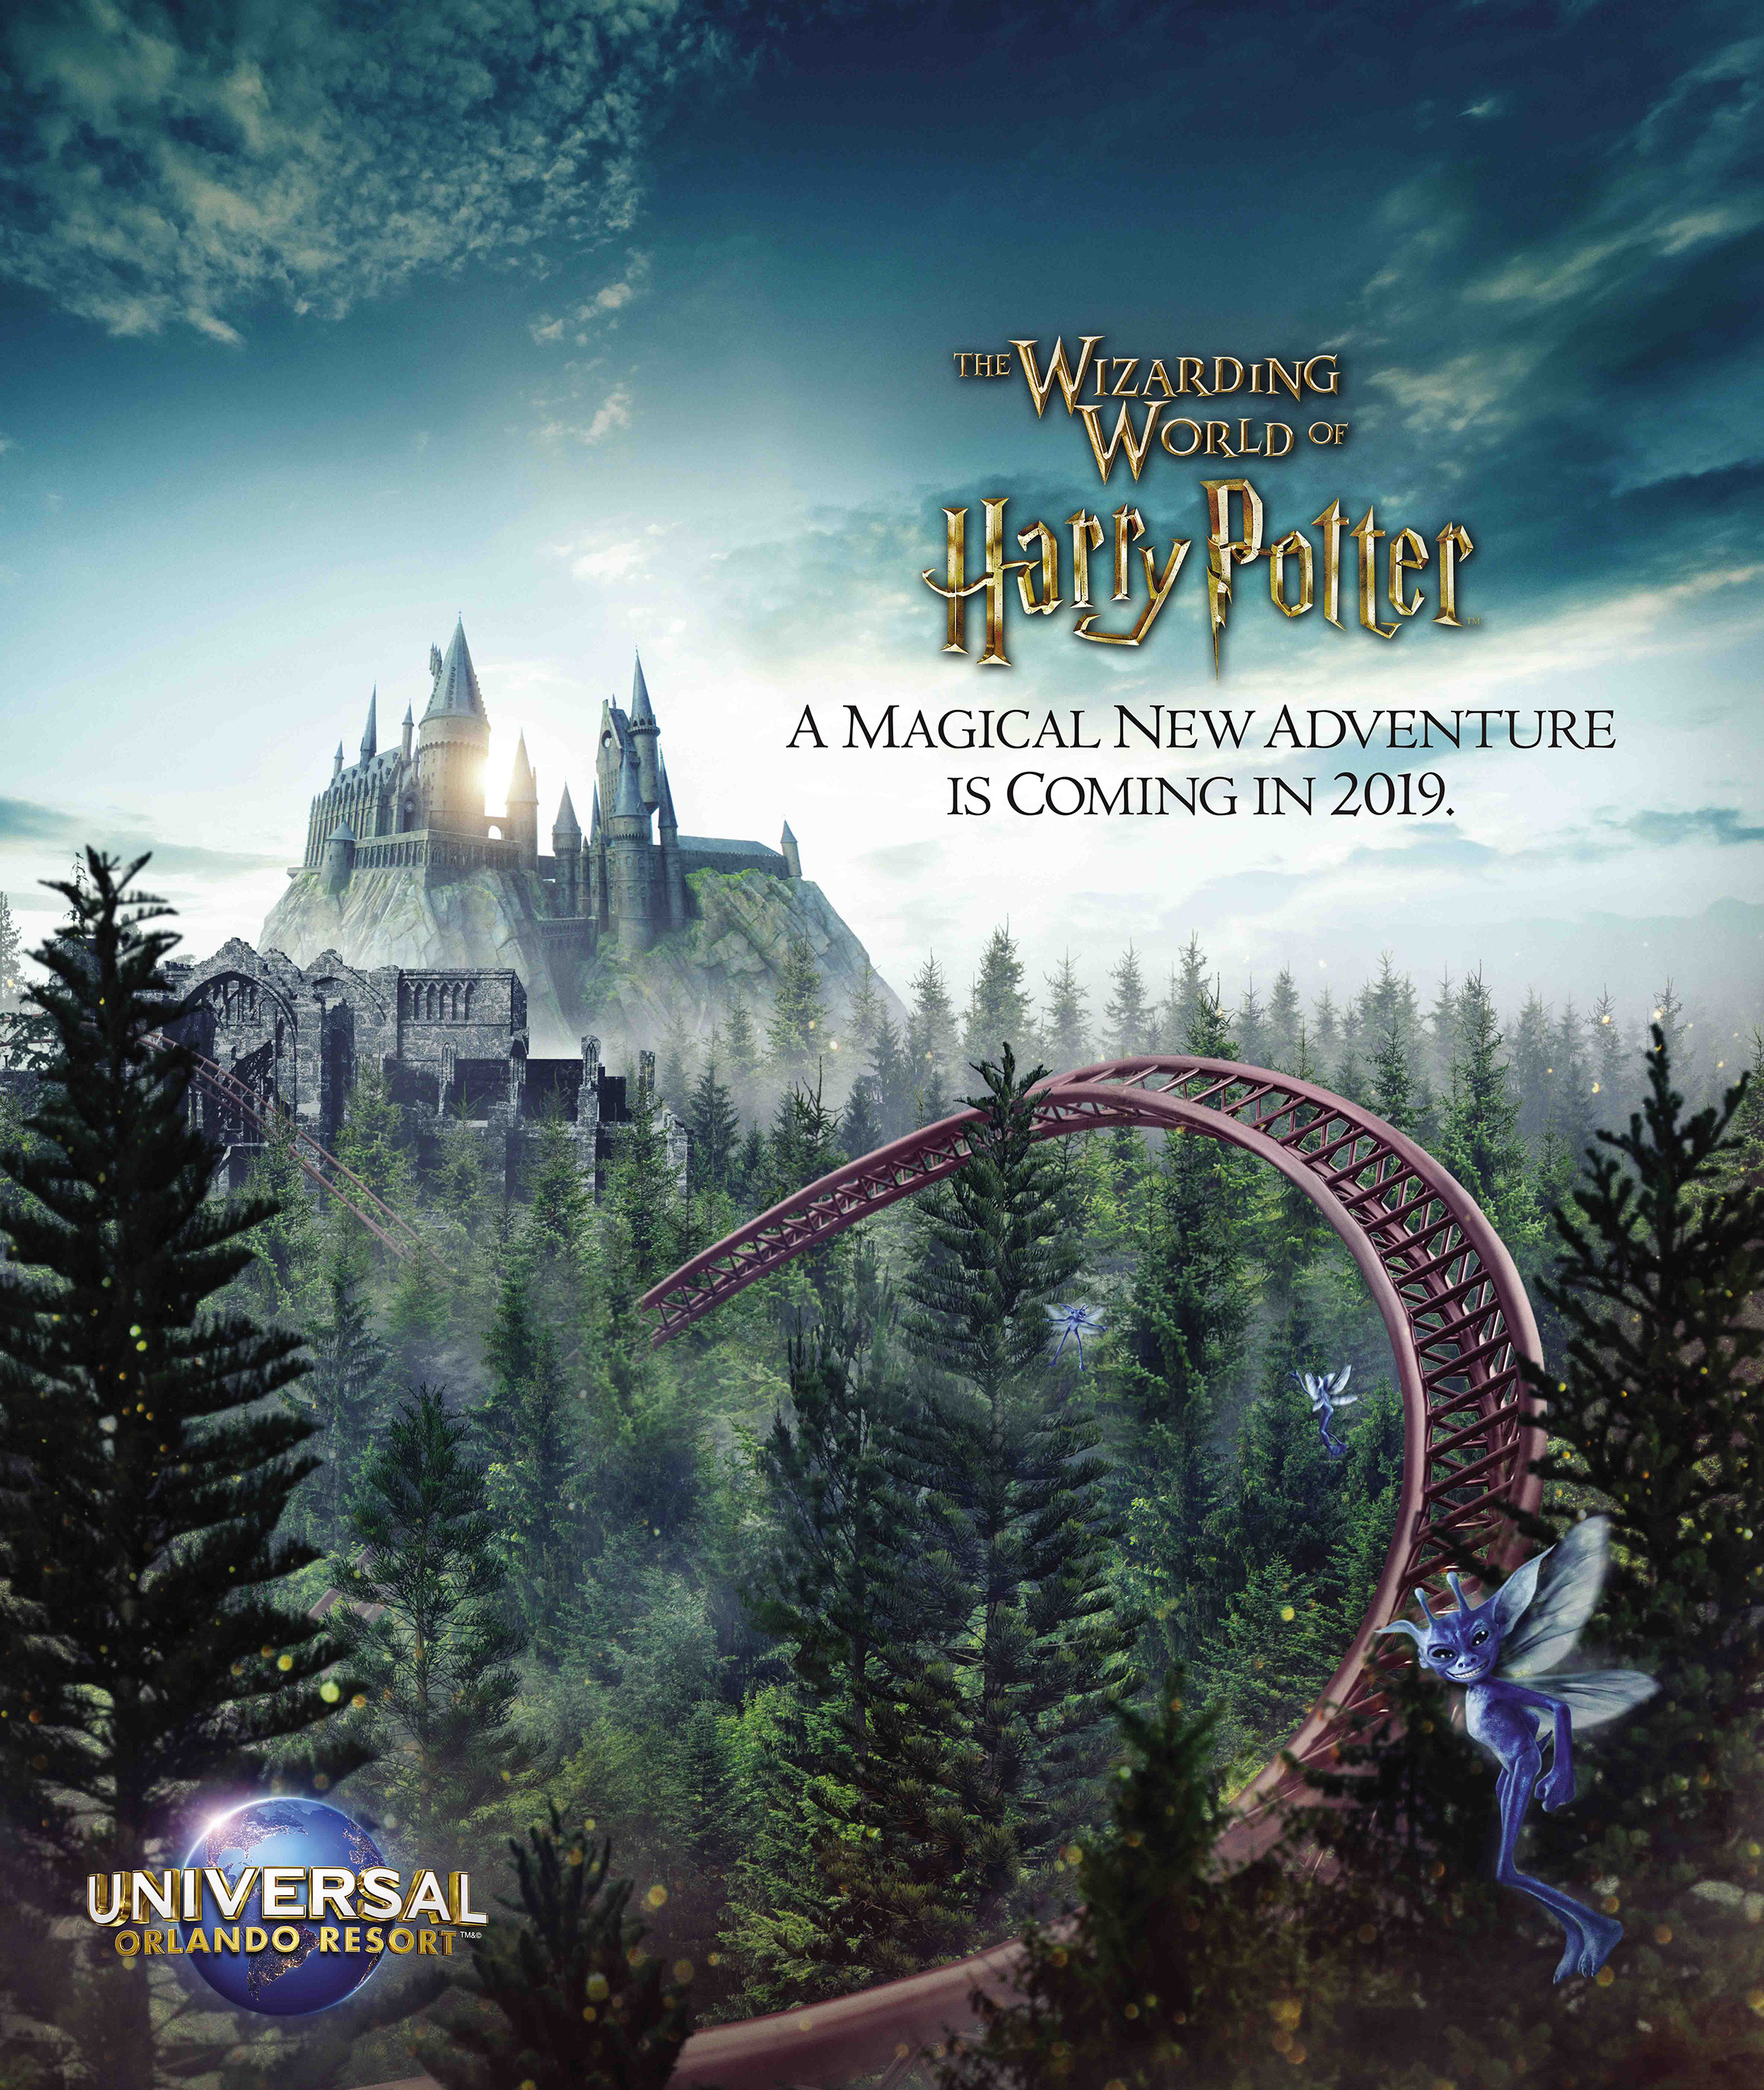 A new coaster, in place of the now-closed Dragon Challenge attraction, promises to immerse guests in an all-new adventure at Universal Orlando's The Wizarding World of Harry Potter in 2019.